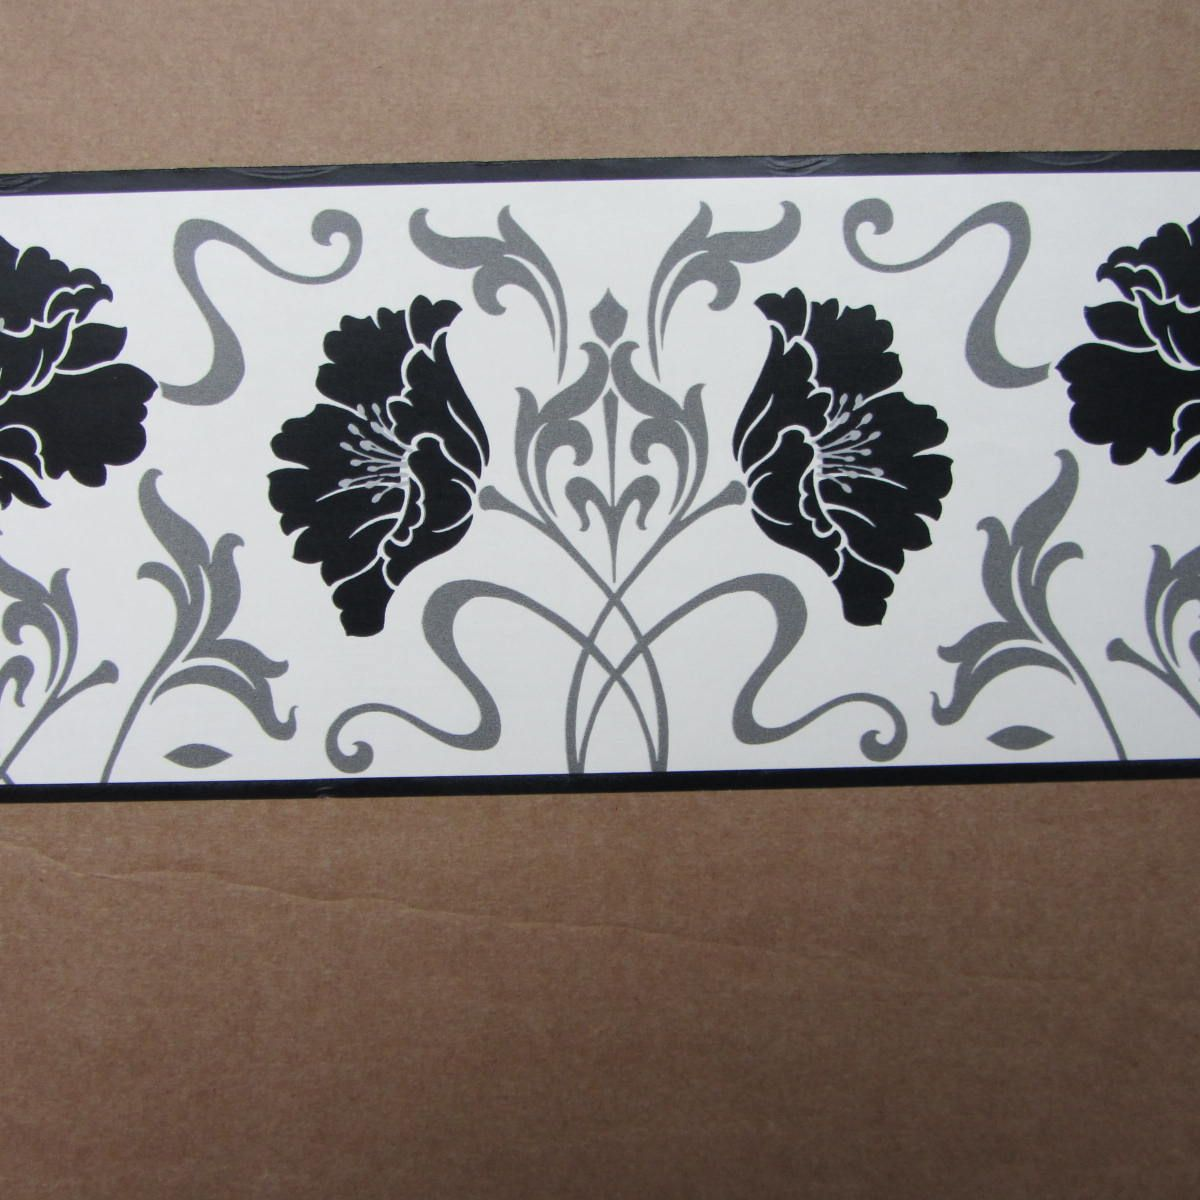 Modern Floral Damask Black White Wallpaper Border Self